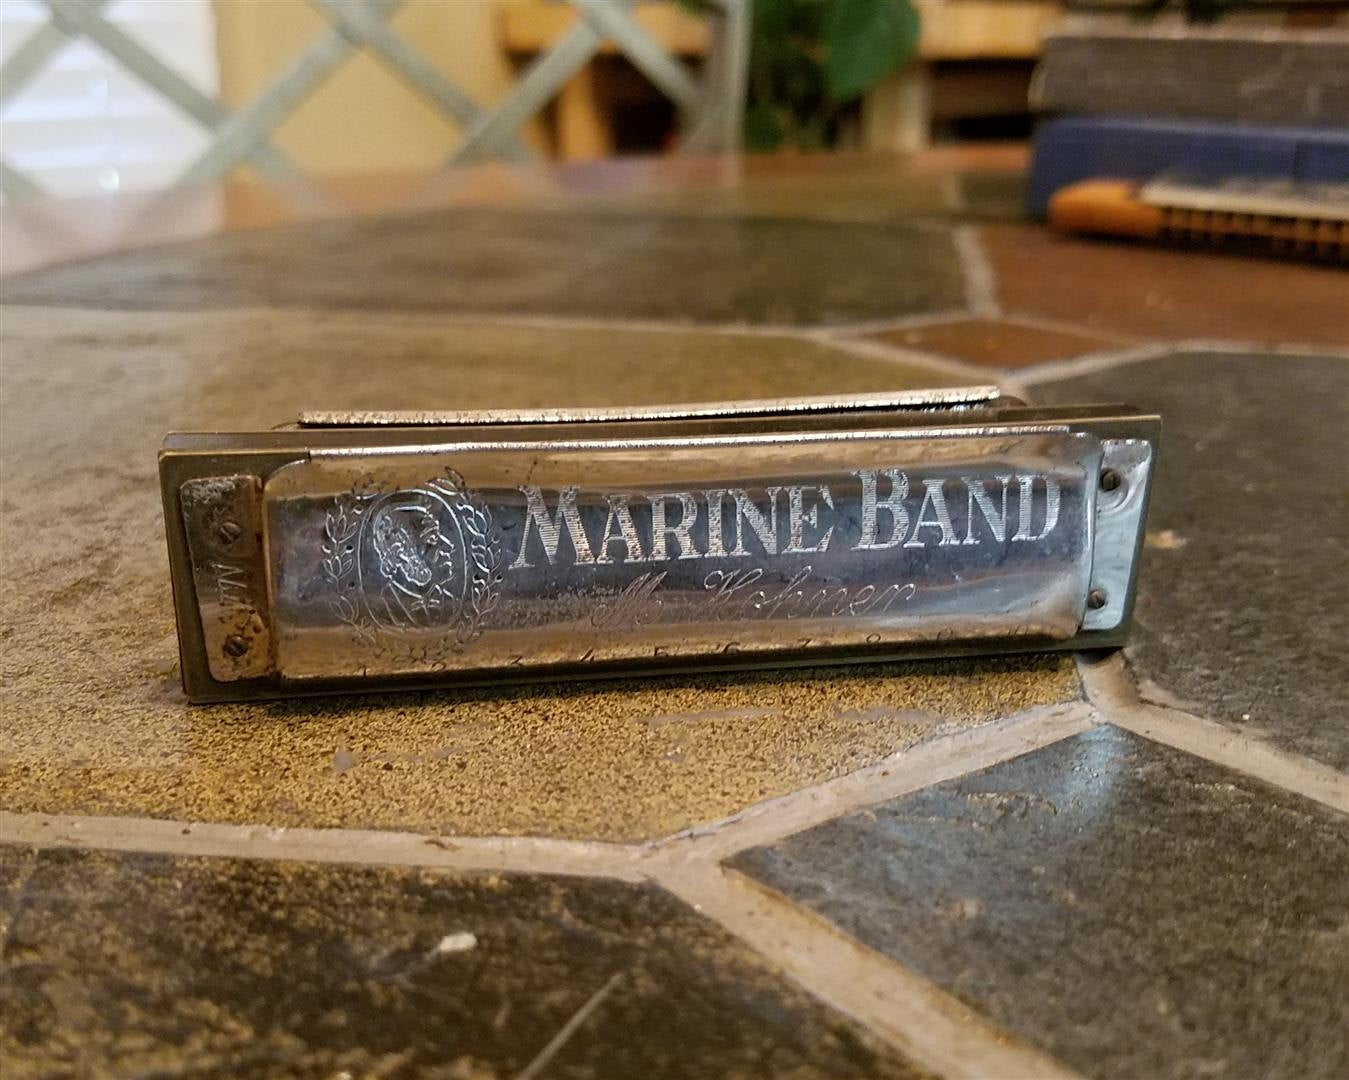 Vintage Marine Band Harmonica No. 1896 made by M. Hohner - Germany